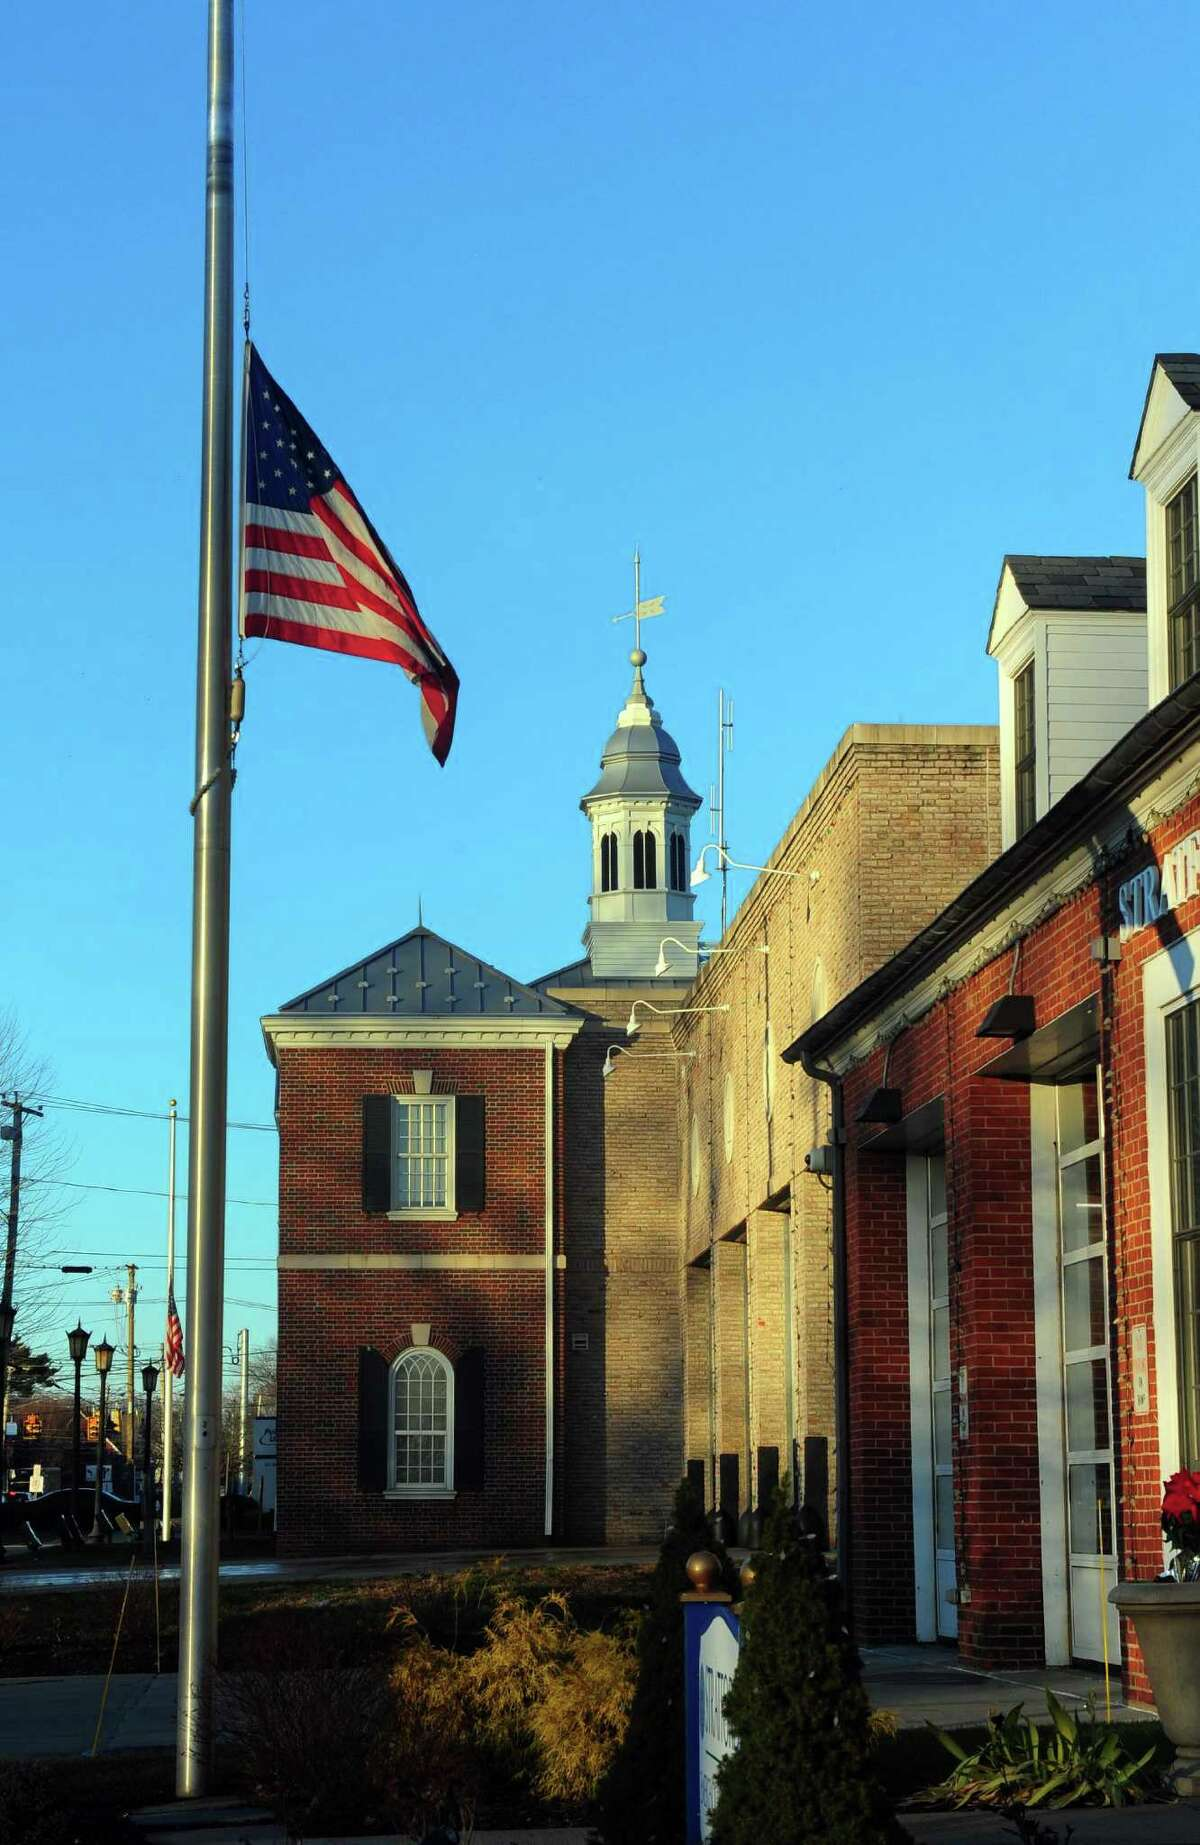 A flag flies at half staff in the front of the Stratford Fire Department on Main Street in Stratford, Conn., in this Dec. 27, 2016, file photo.